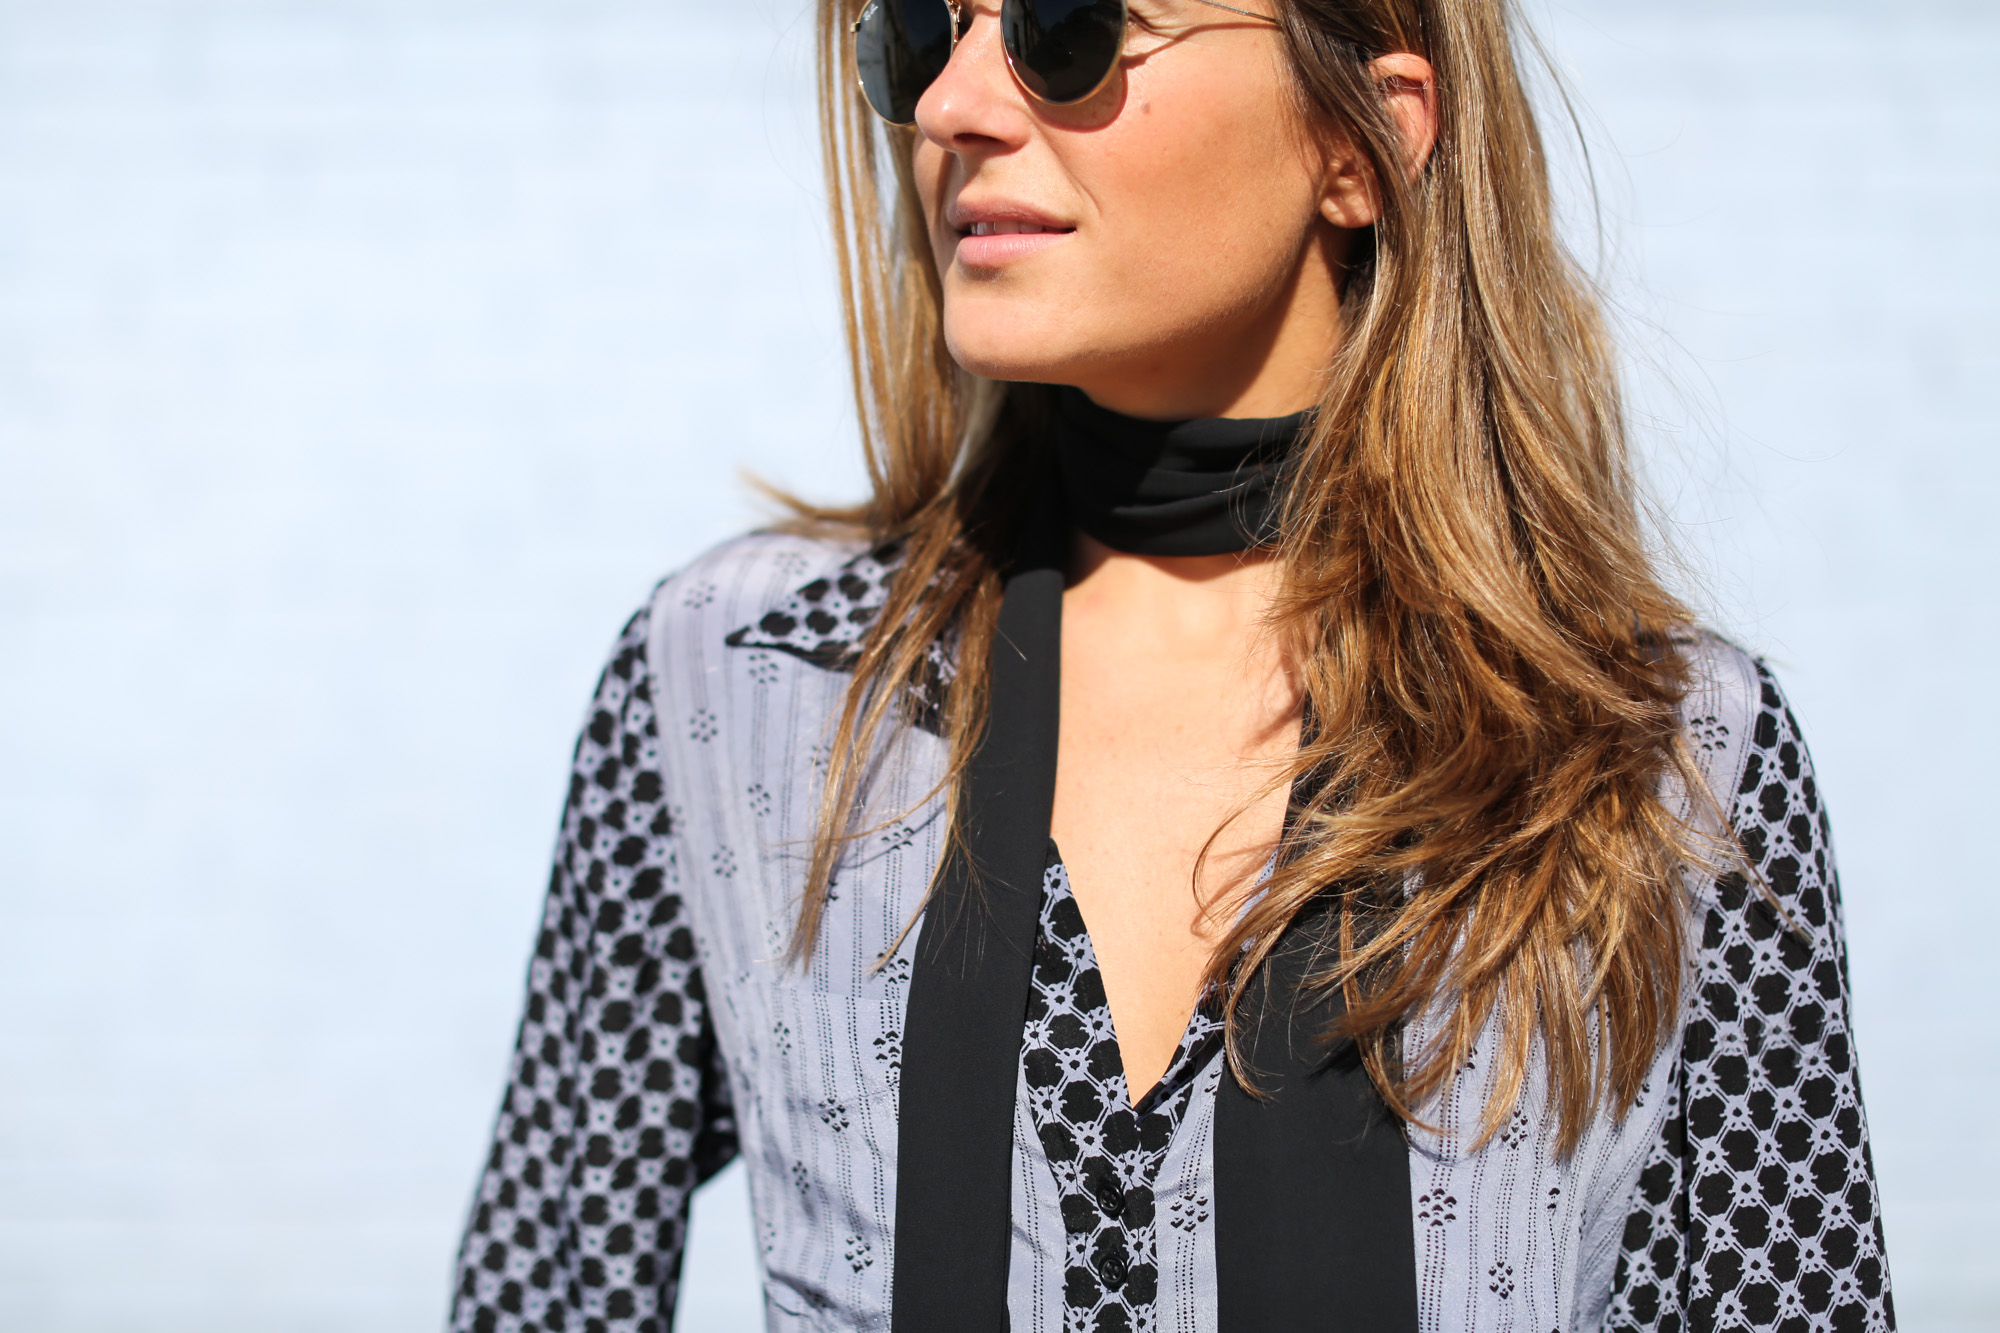 Clochet_Streetstyle_cropped_flare_jeans_isabel_marant_silk_shirt_granny_shoes-9